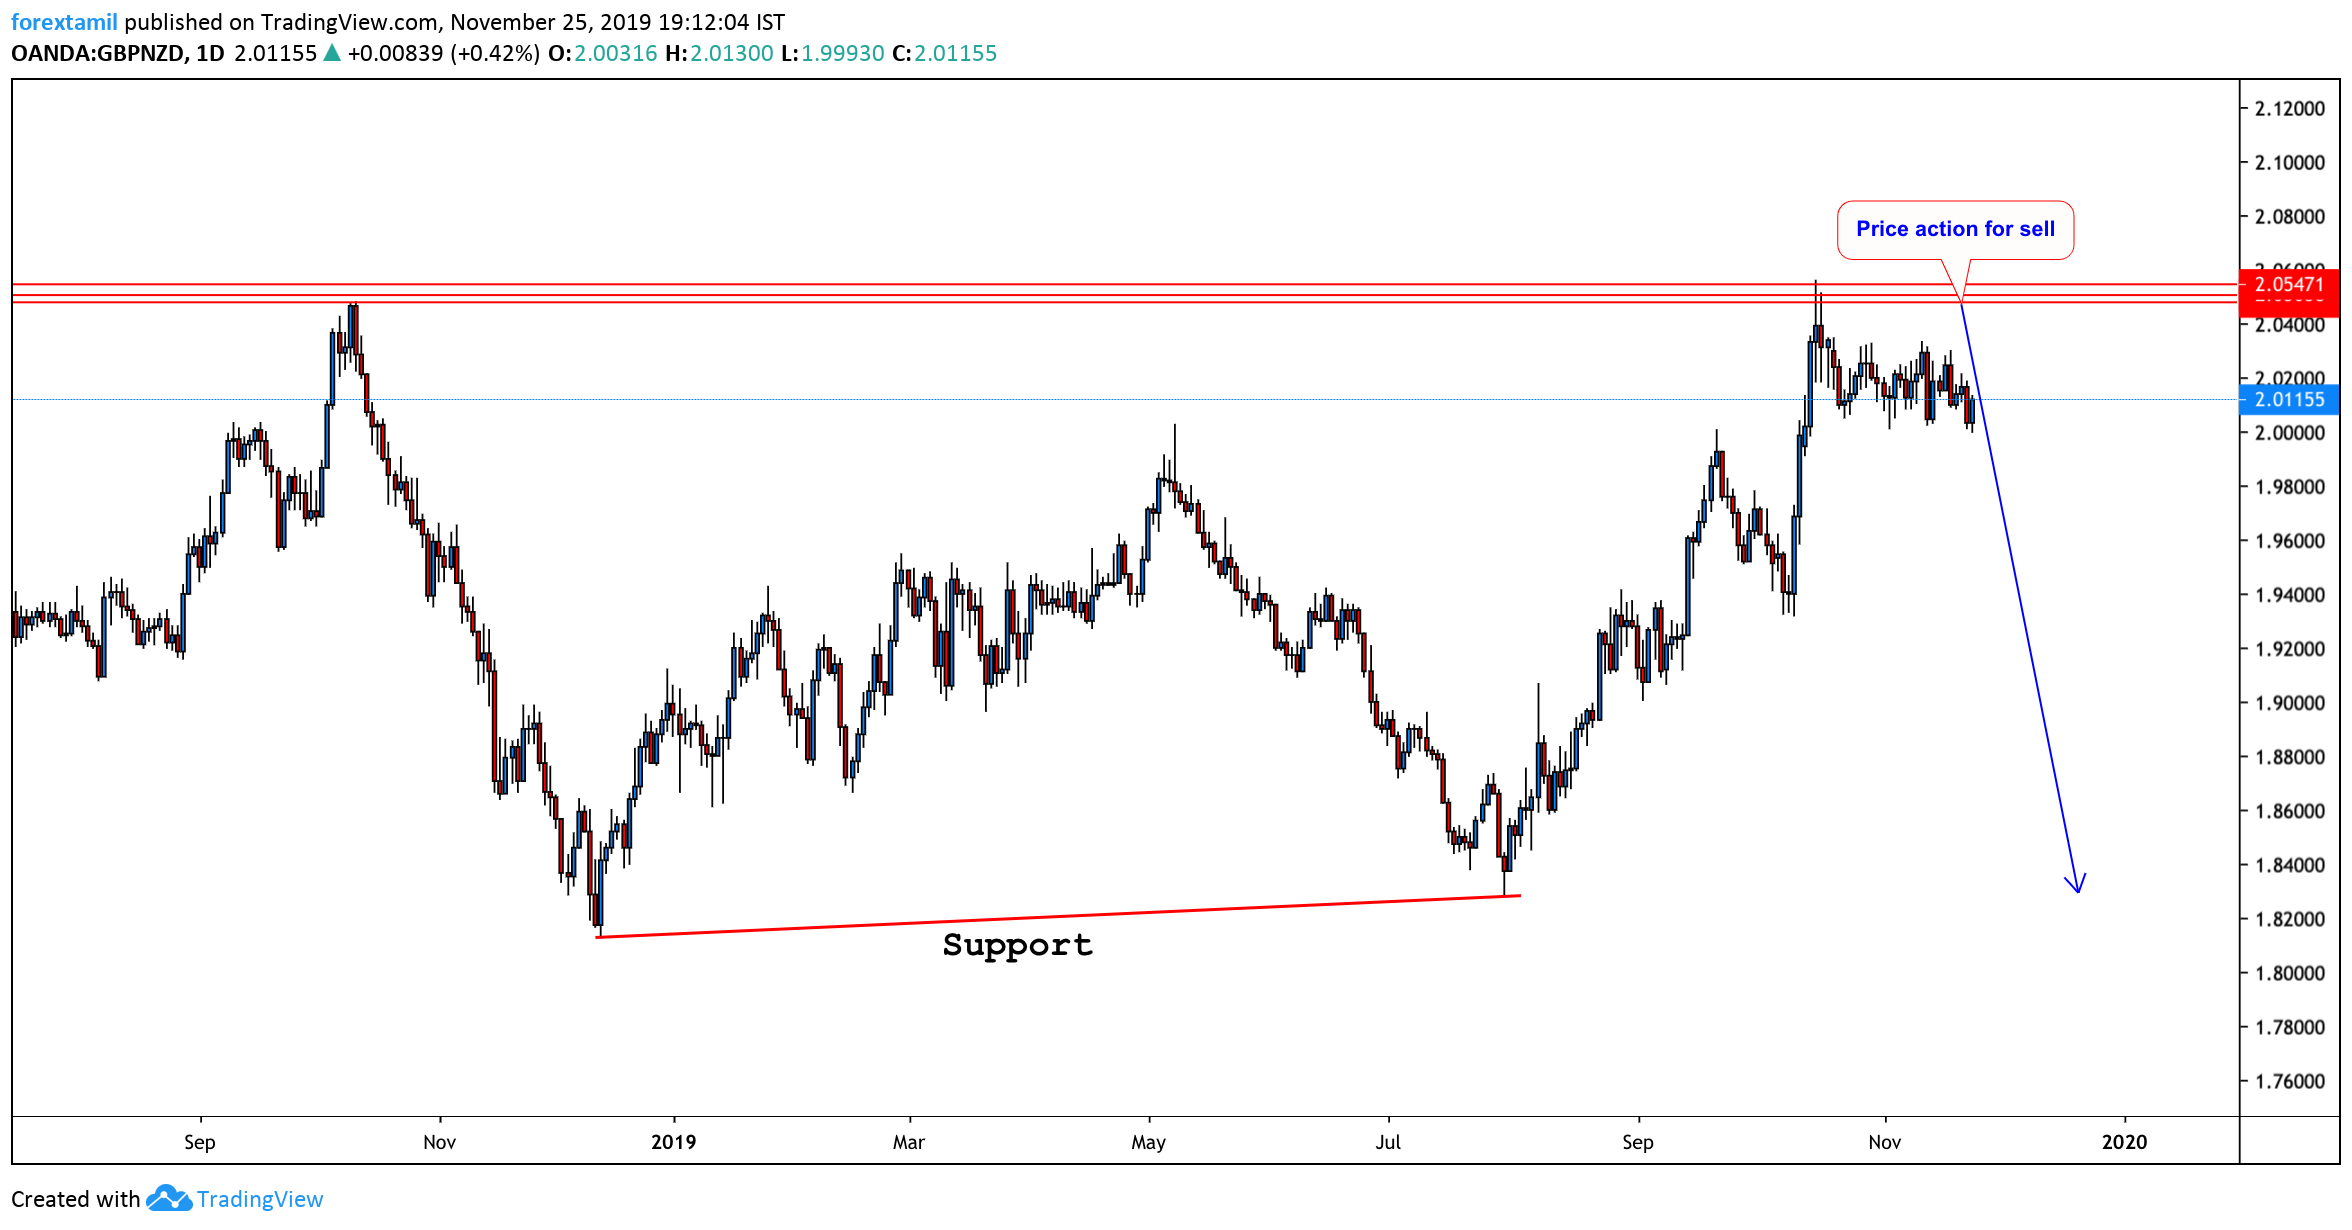 GBP/NZD Daily Time Frame Chart: Can the Bears prevail?